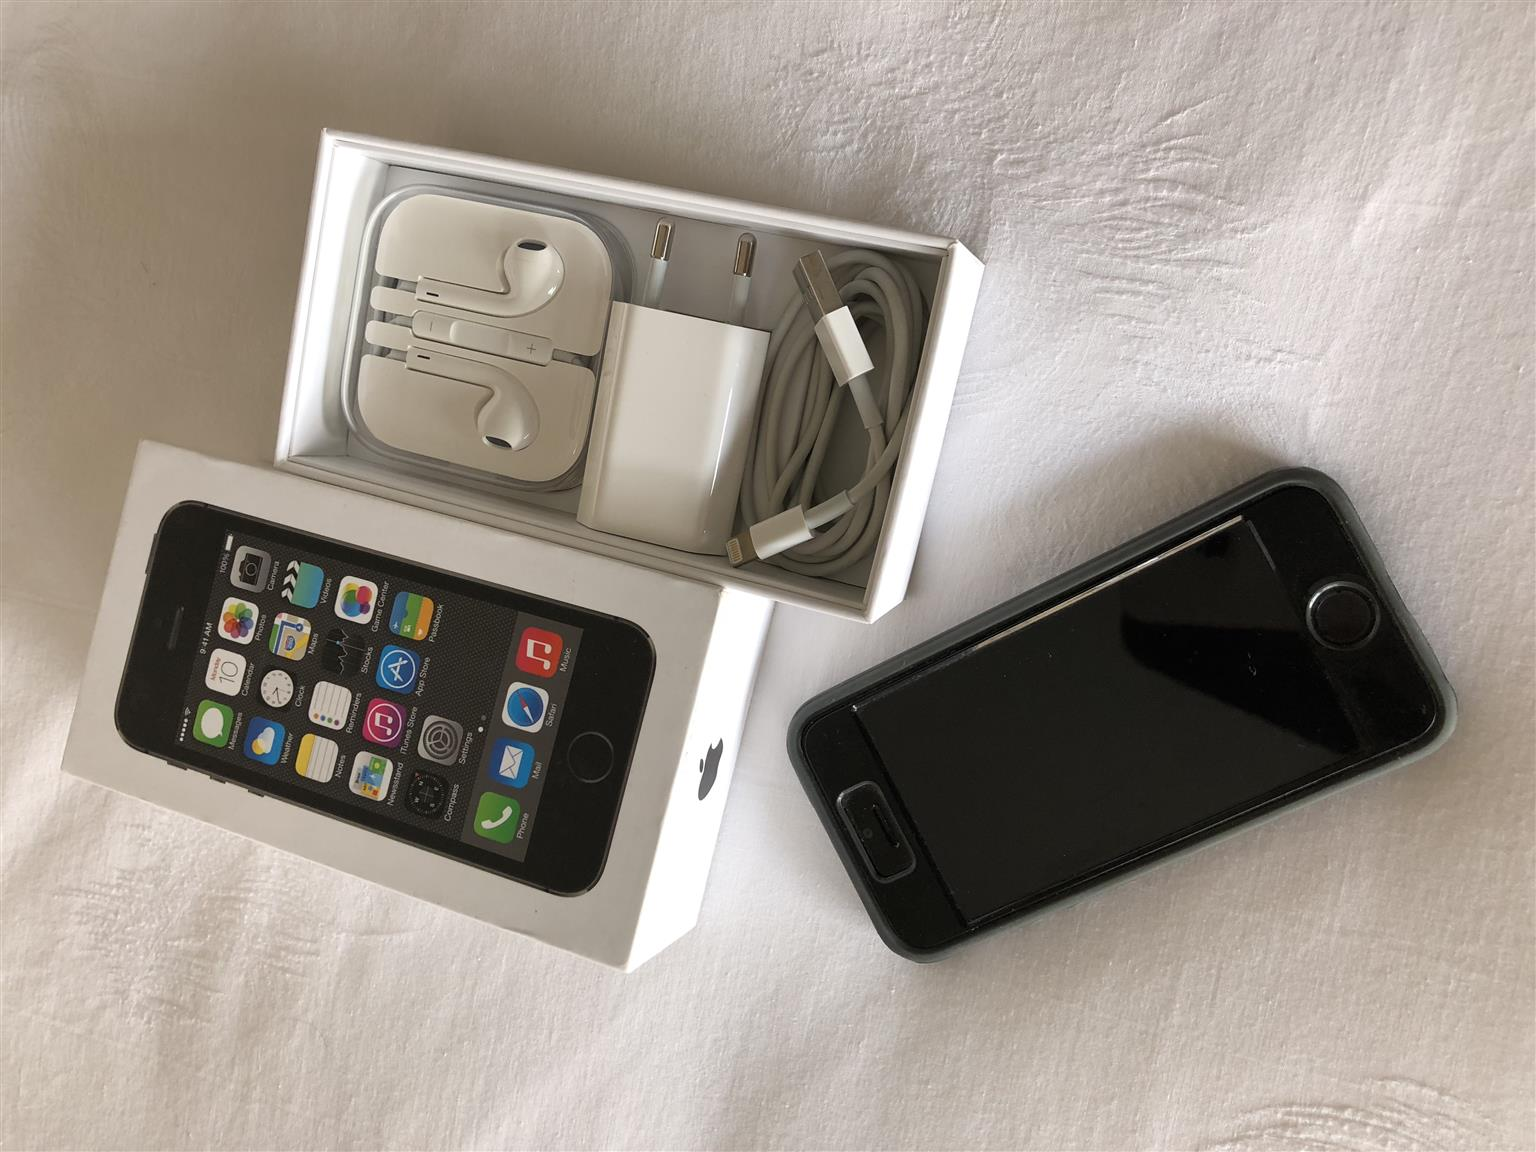 iPhone 5S - 16 GB - Excellent Condition